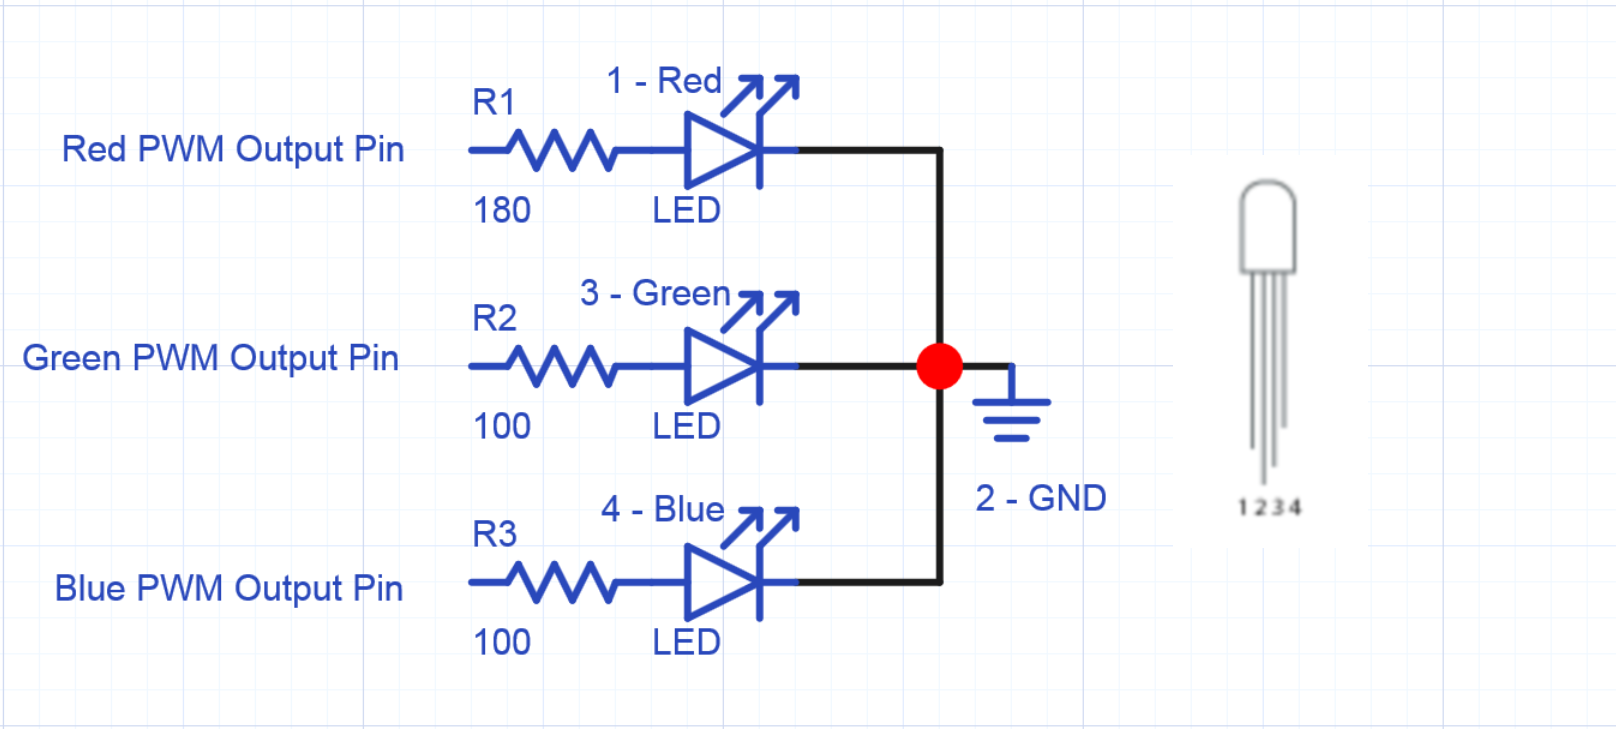 rgbledschematic using rgb leds mbed wiring diagram led resistor at soozxer.org